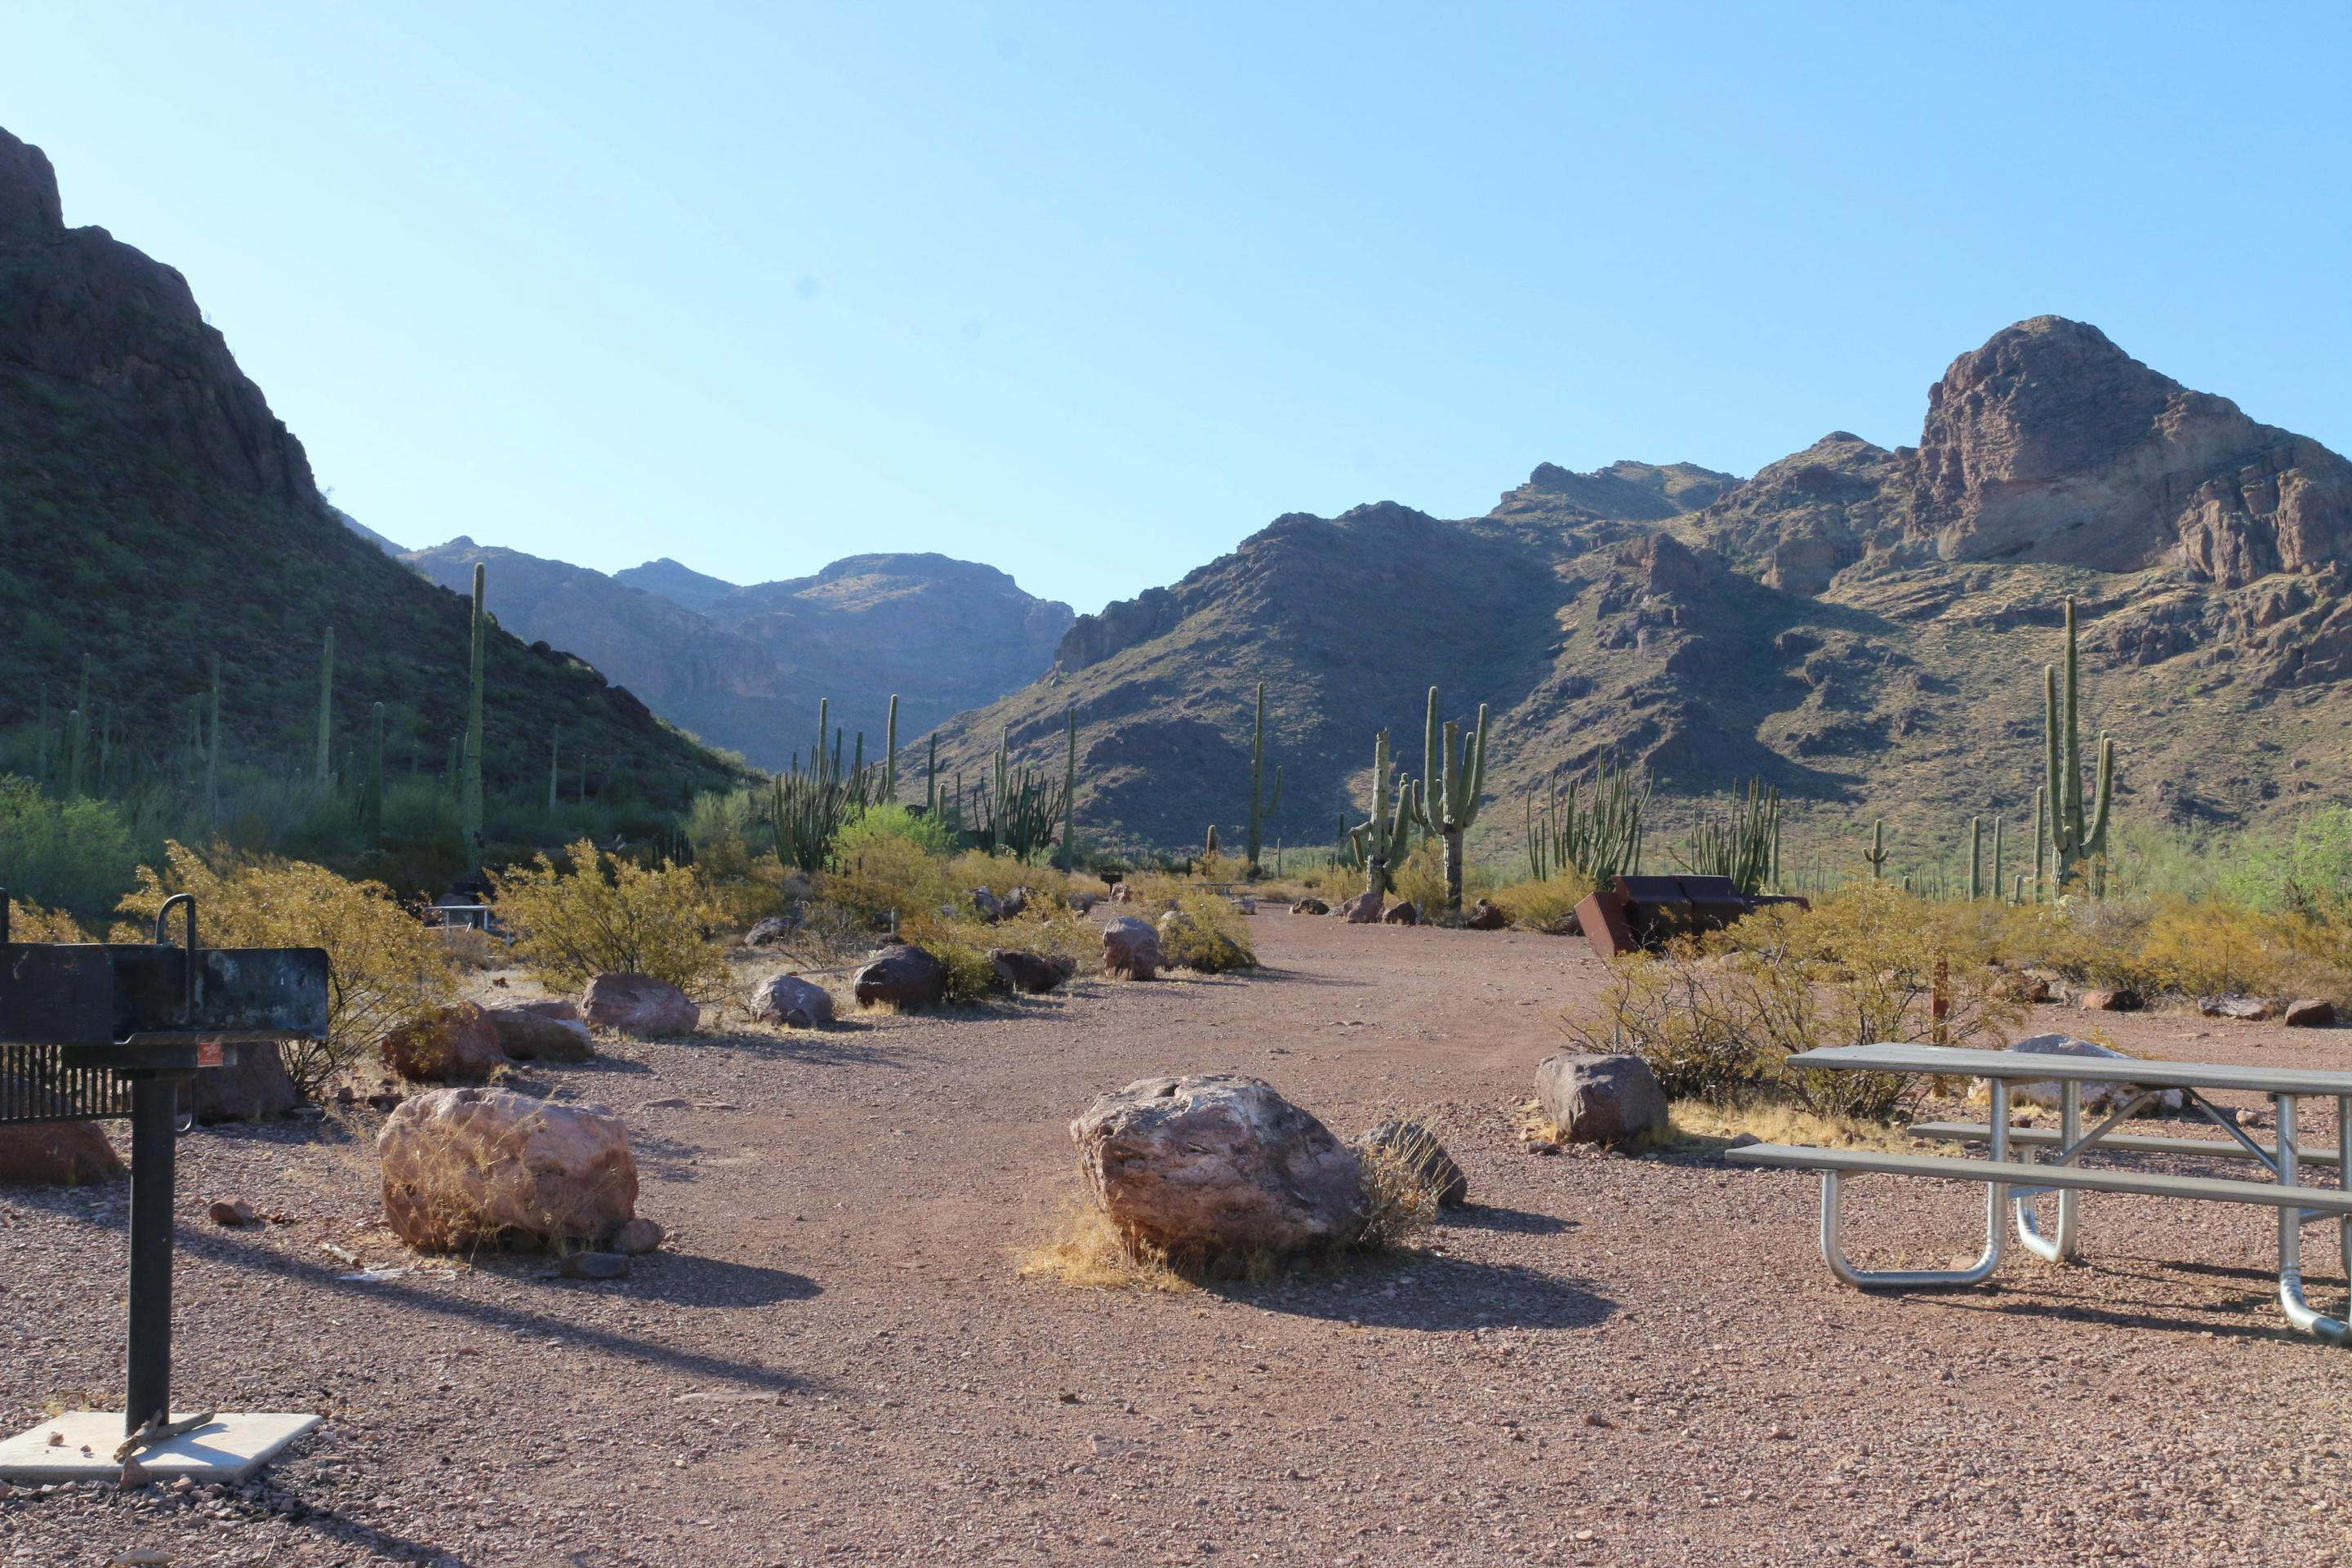 Alamo CampgroundMany visitors seeking seclusion and solitude enjoy the Alamo Canyon campground.